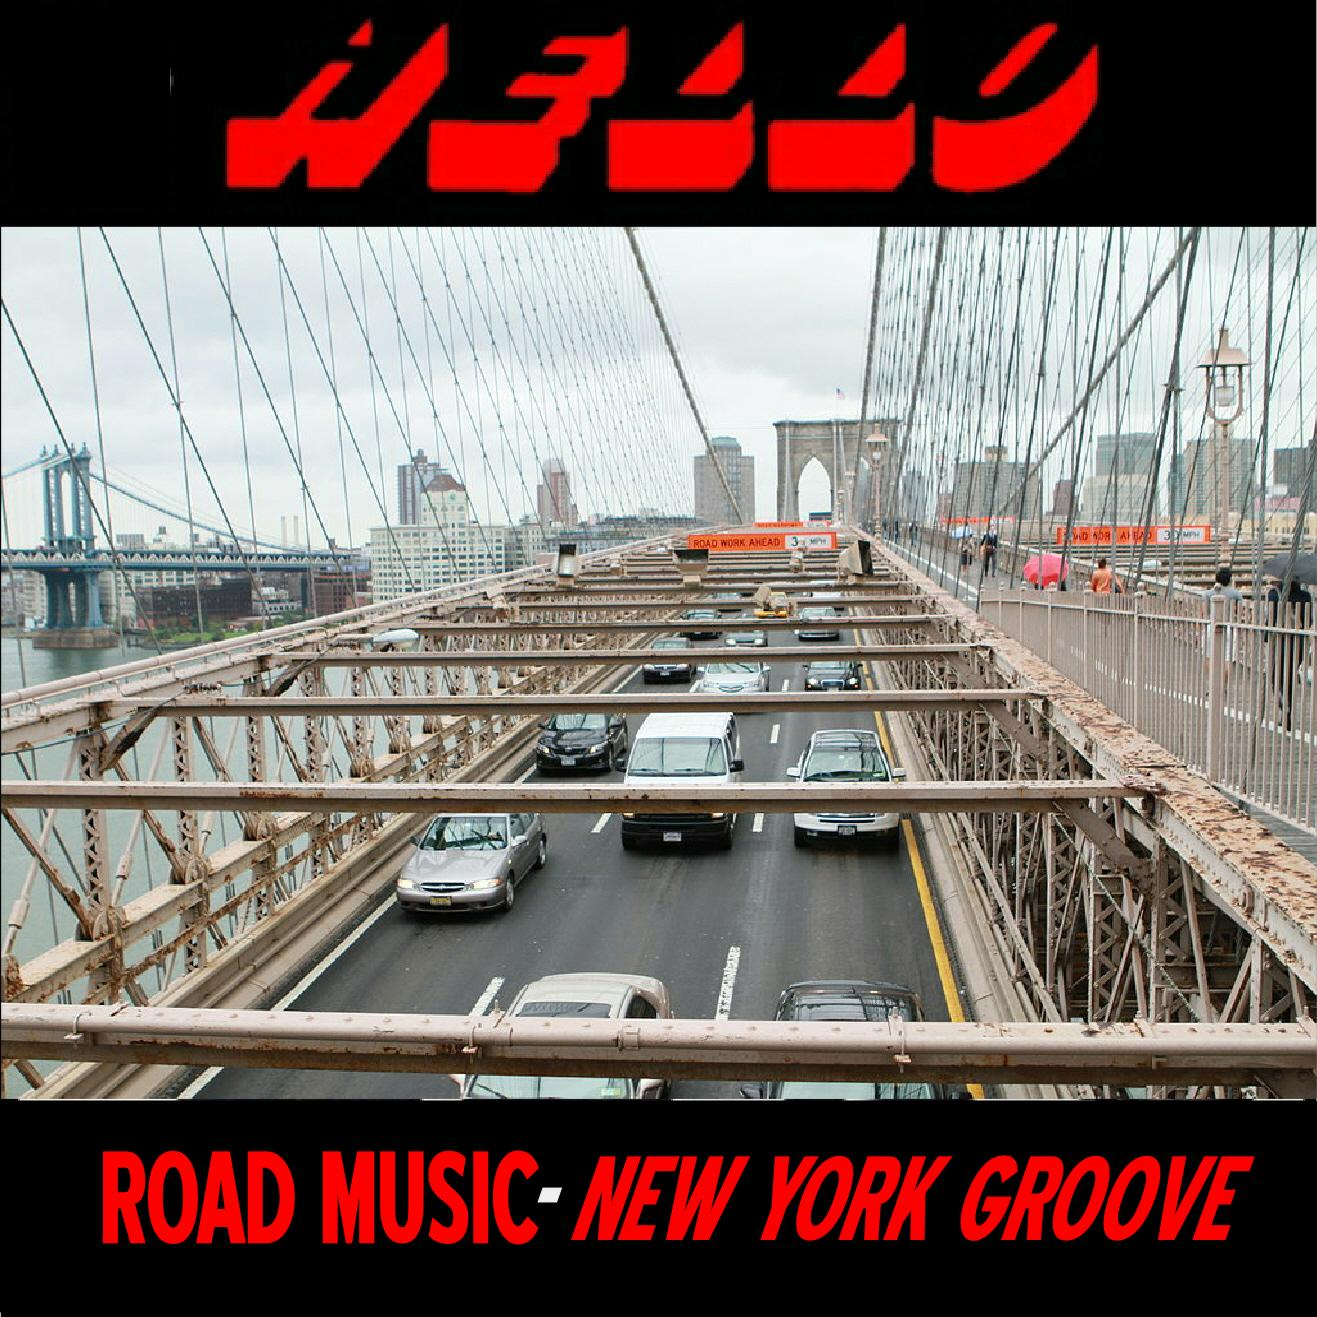 Road Music - New York Groove EP